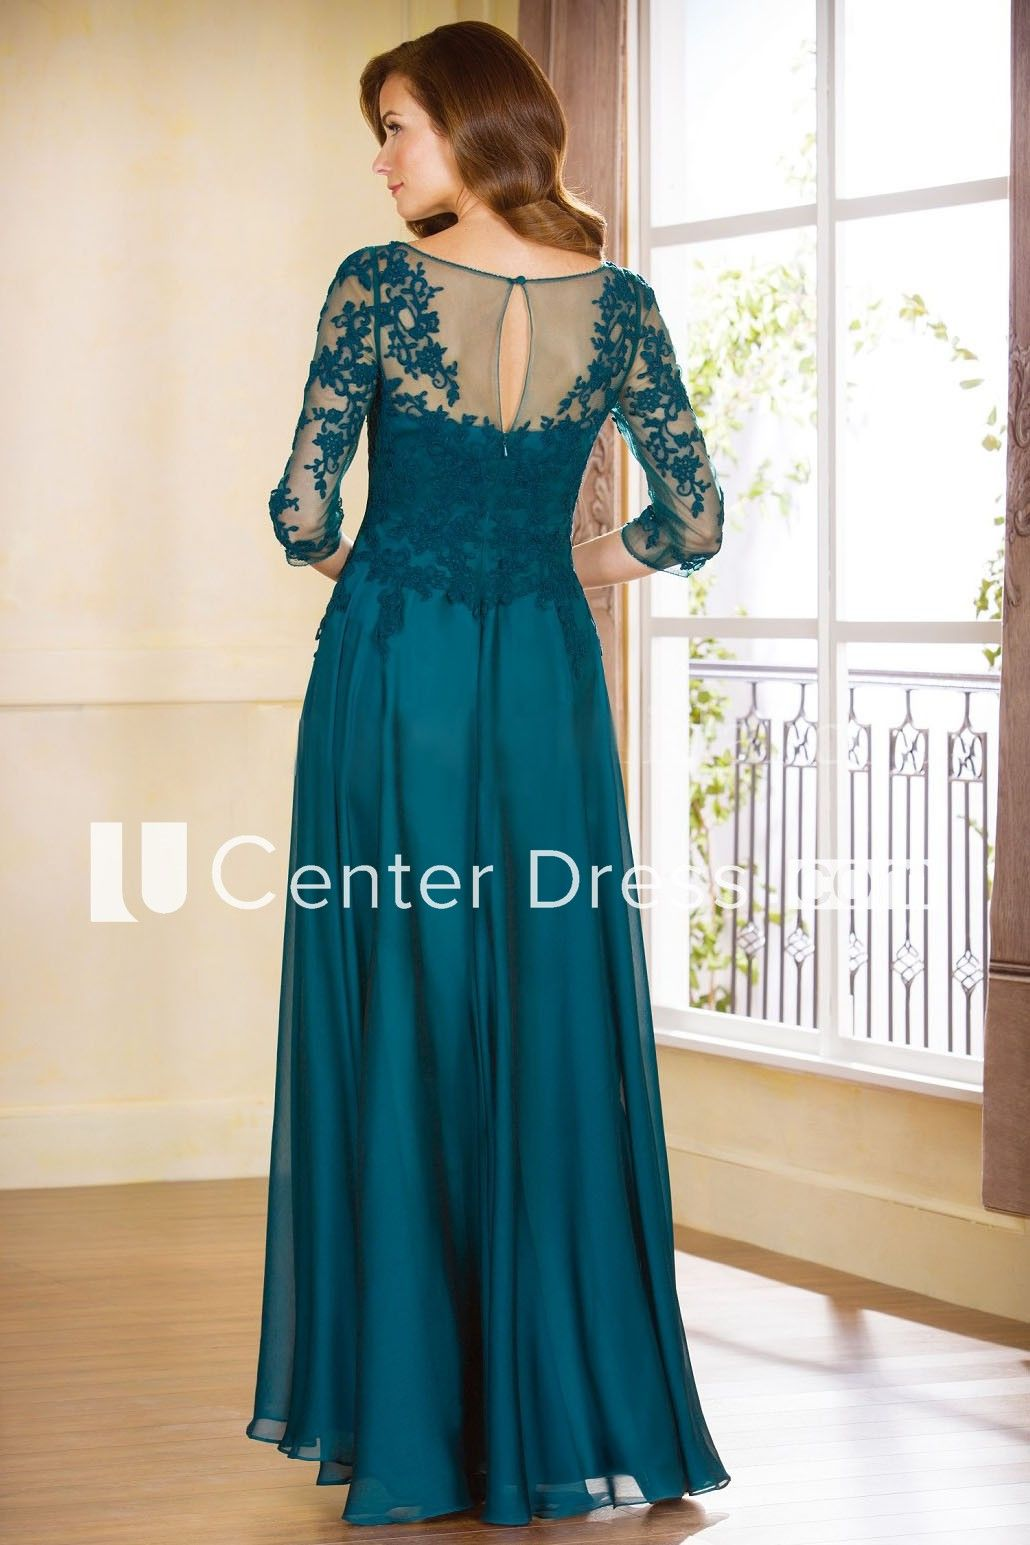 a79c302aaa27 3-4 Sleeved A-Line Gown With Appliques And Illusion Style - UCenter Dress